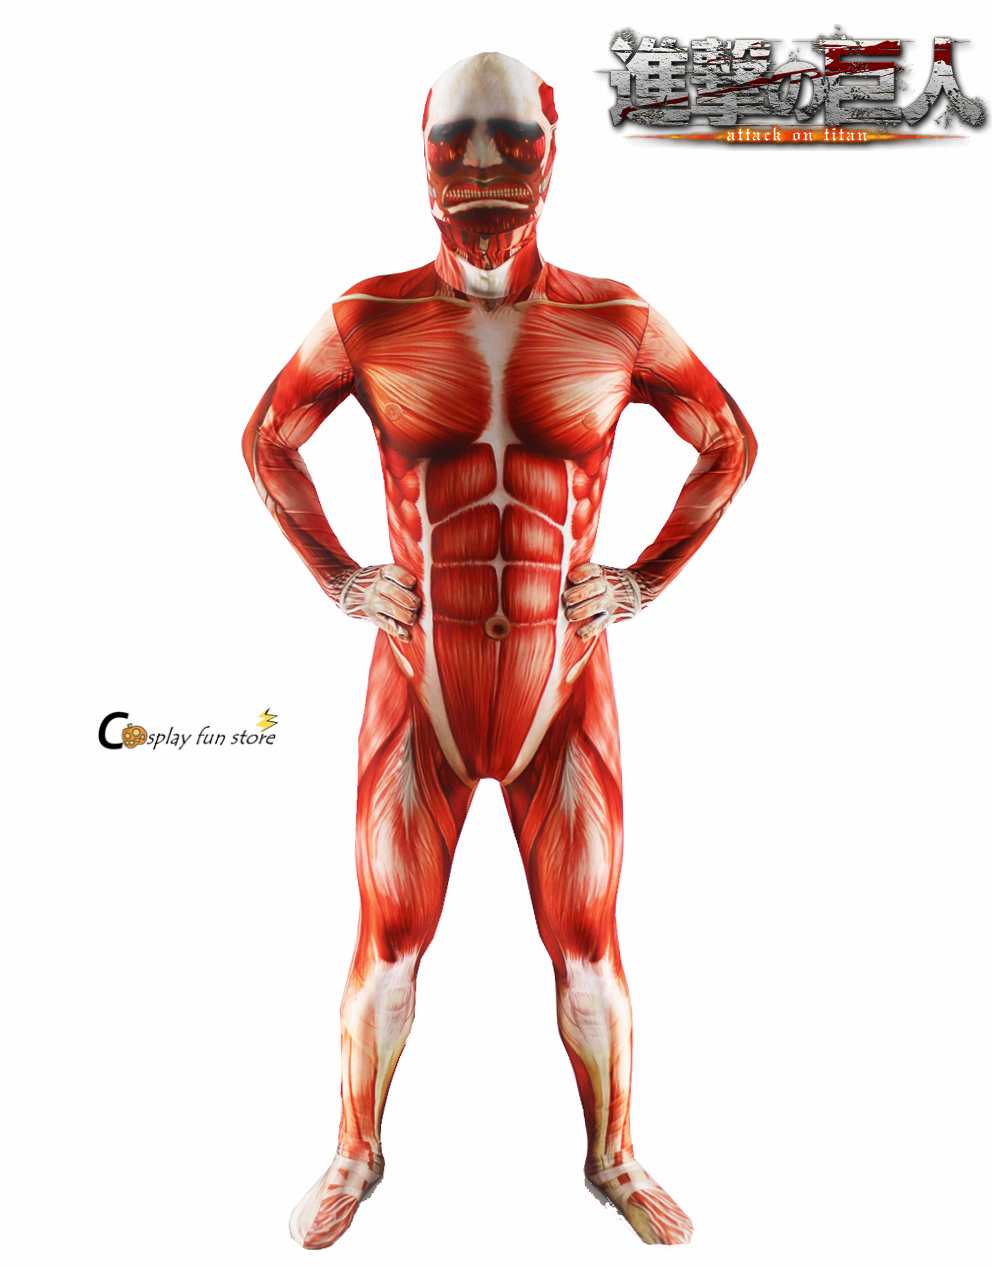 Attack on titan cosplay Shingeki no Kyojin cosplay Colossal Prop Tights Muscle Man halloween costumes for men adult zentai